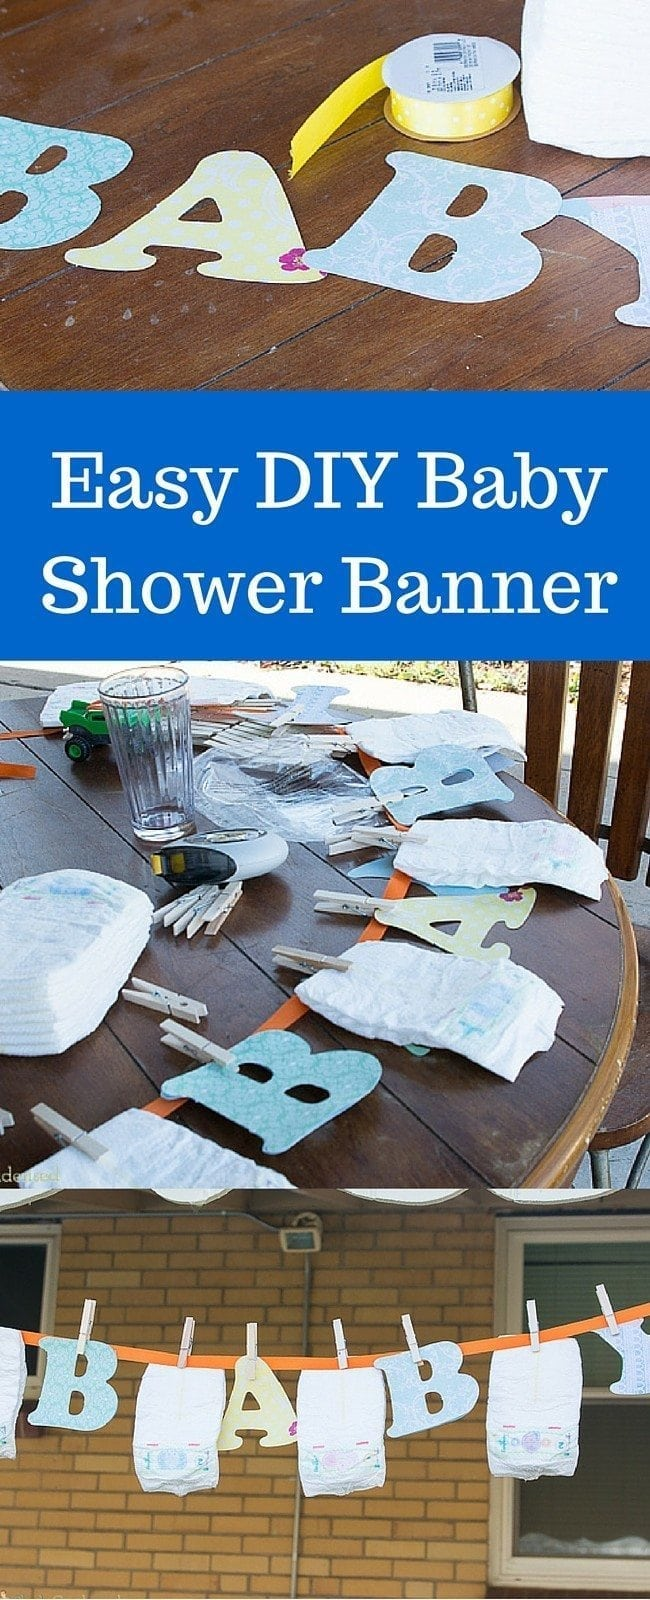 Easy DIY Baby Shower Banner - this is SO cute! Perfect for a baby shower.